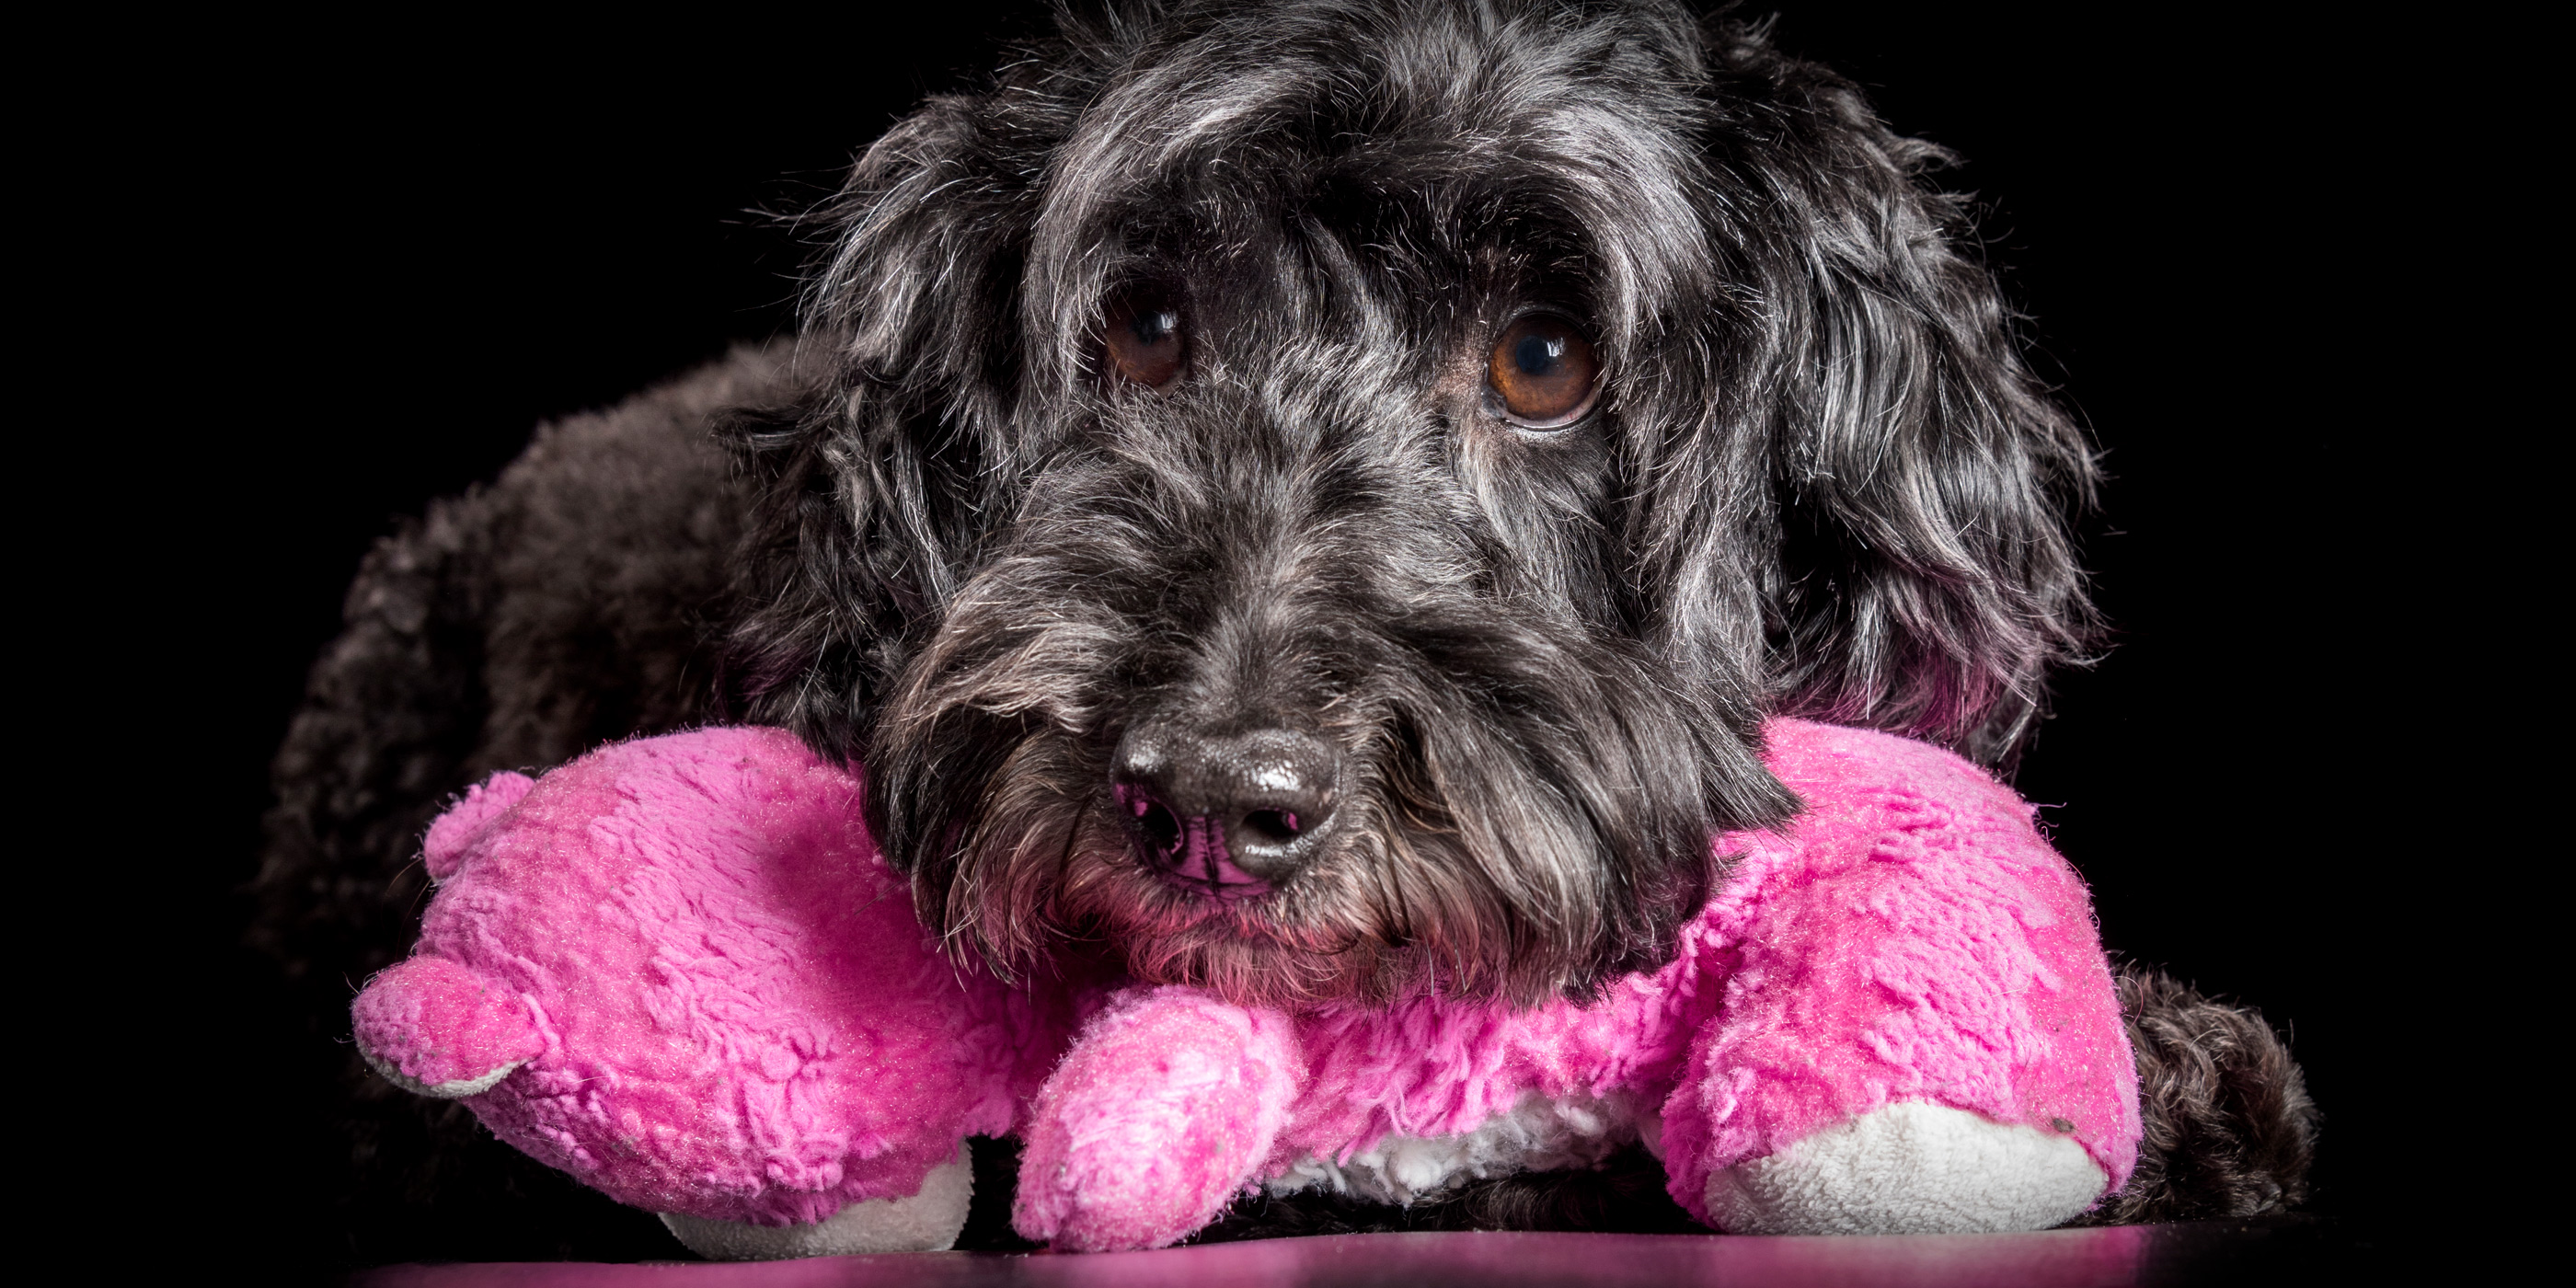 sweet faced black poodle resting head on pink stuffed toy